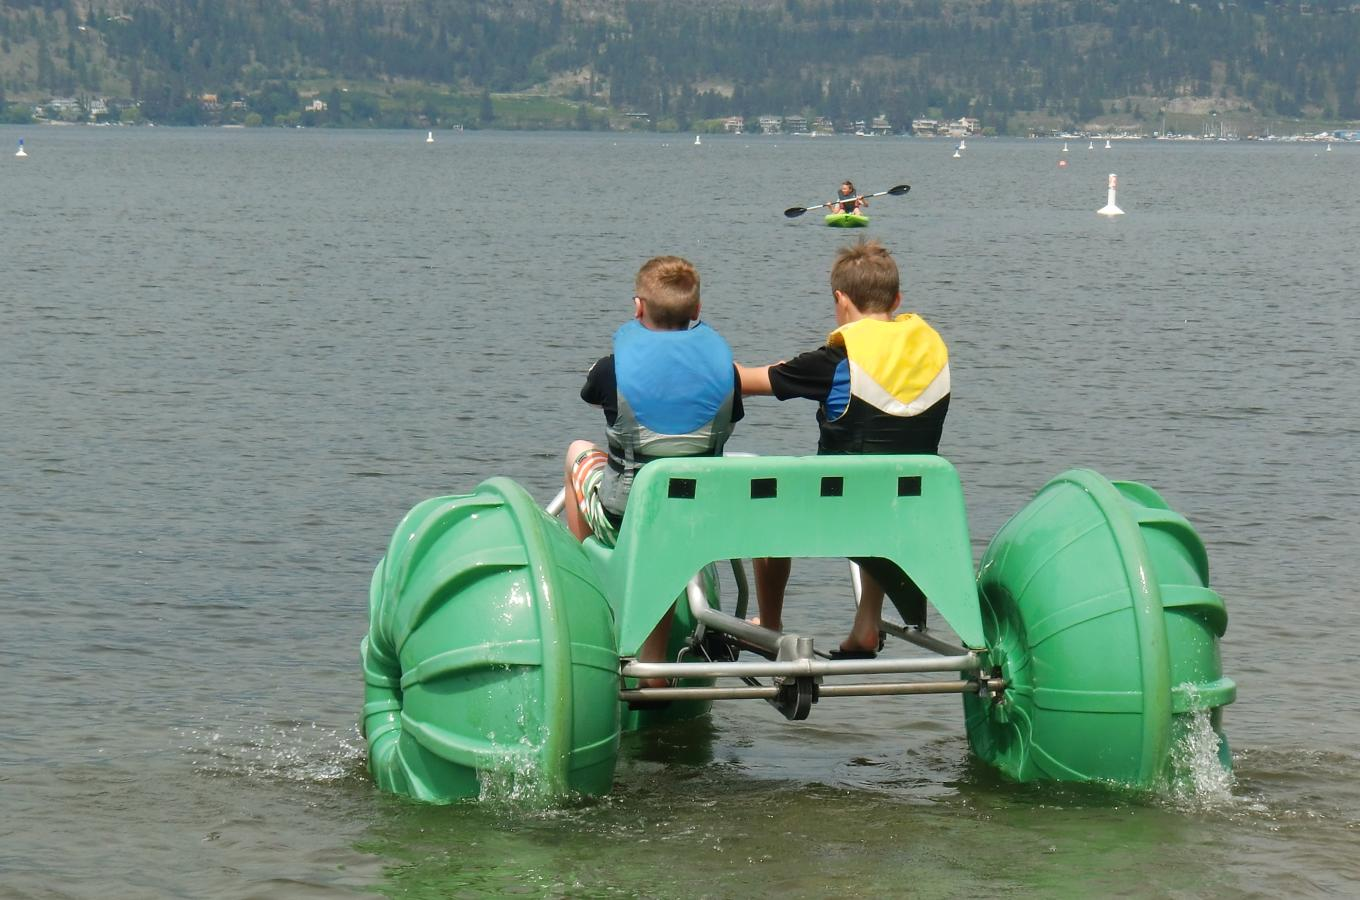 Kids on Aqua Bike 2